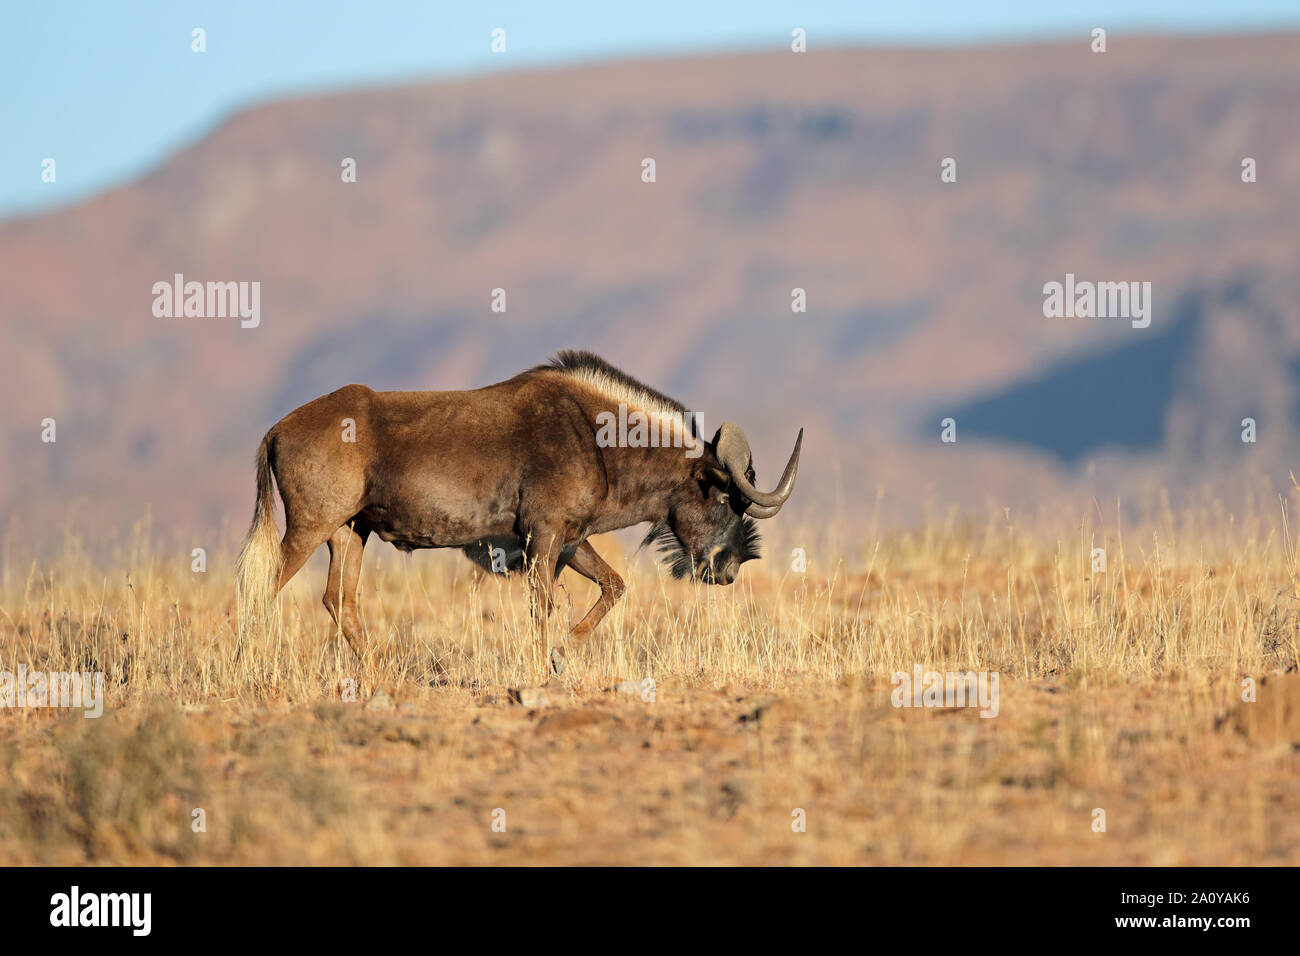 A black wildebeest (Connochaetes gnou) in natural habitat, Mountain Zebra National Park, South Africa Stock Photo